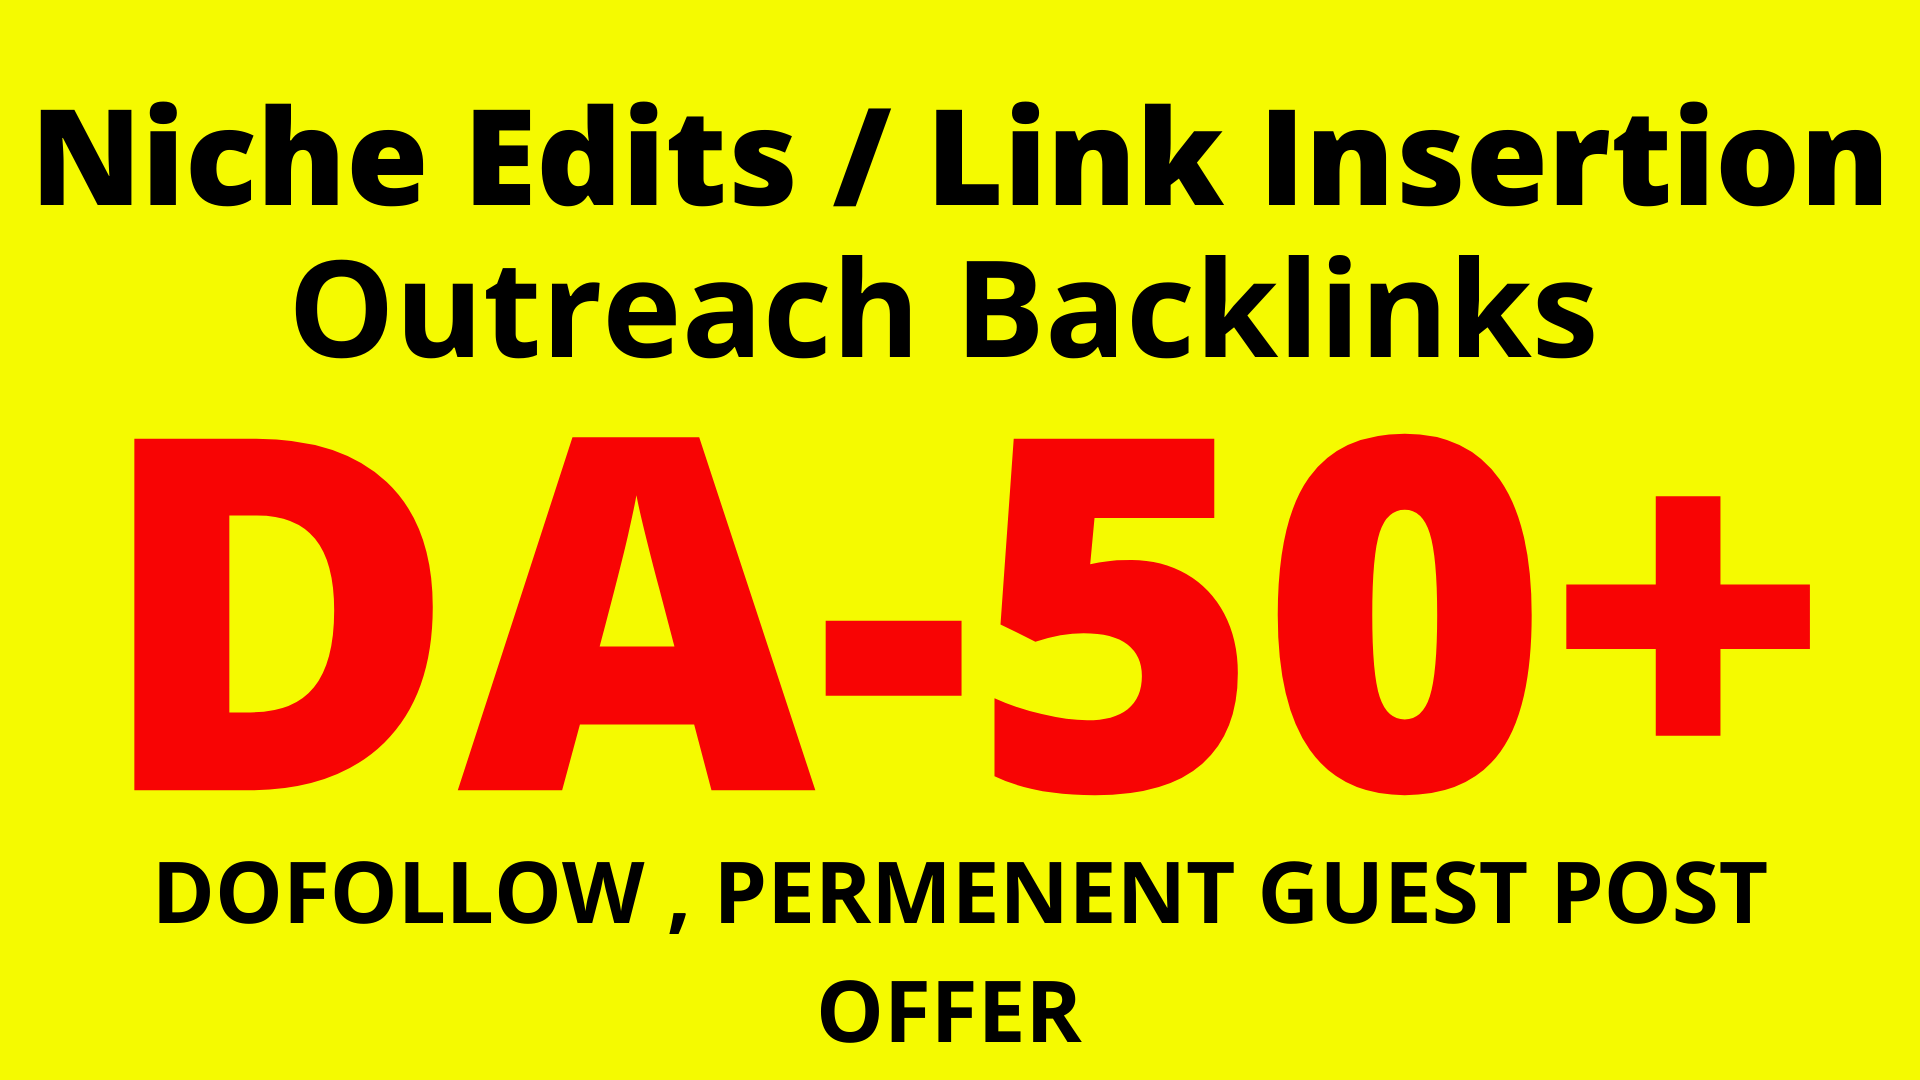 I will do niche edit outreach SEO backlinks link building service